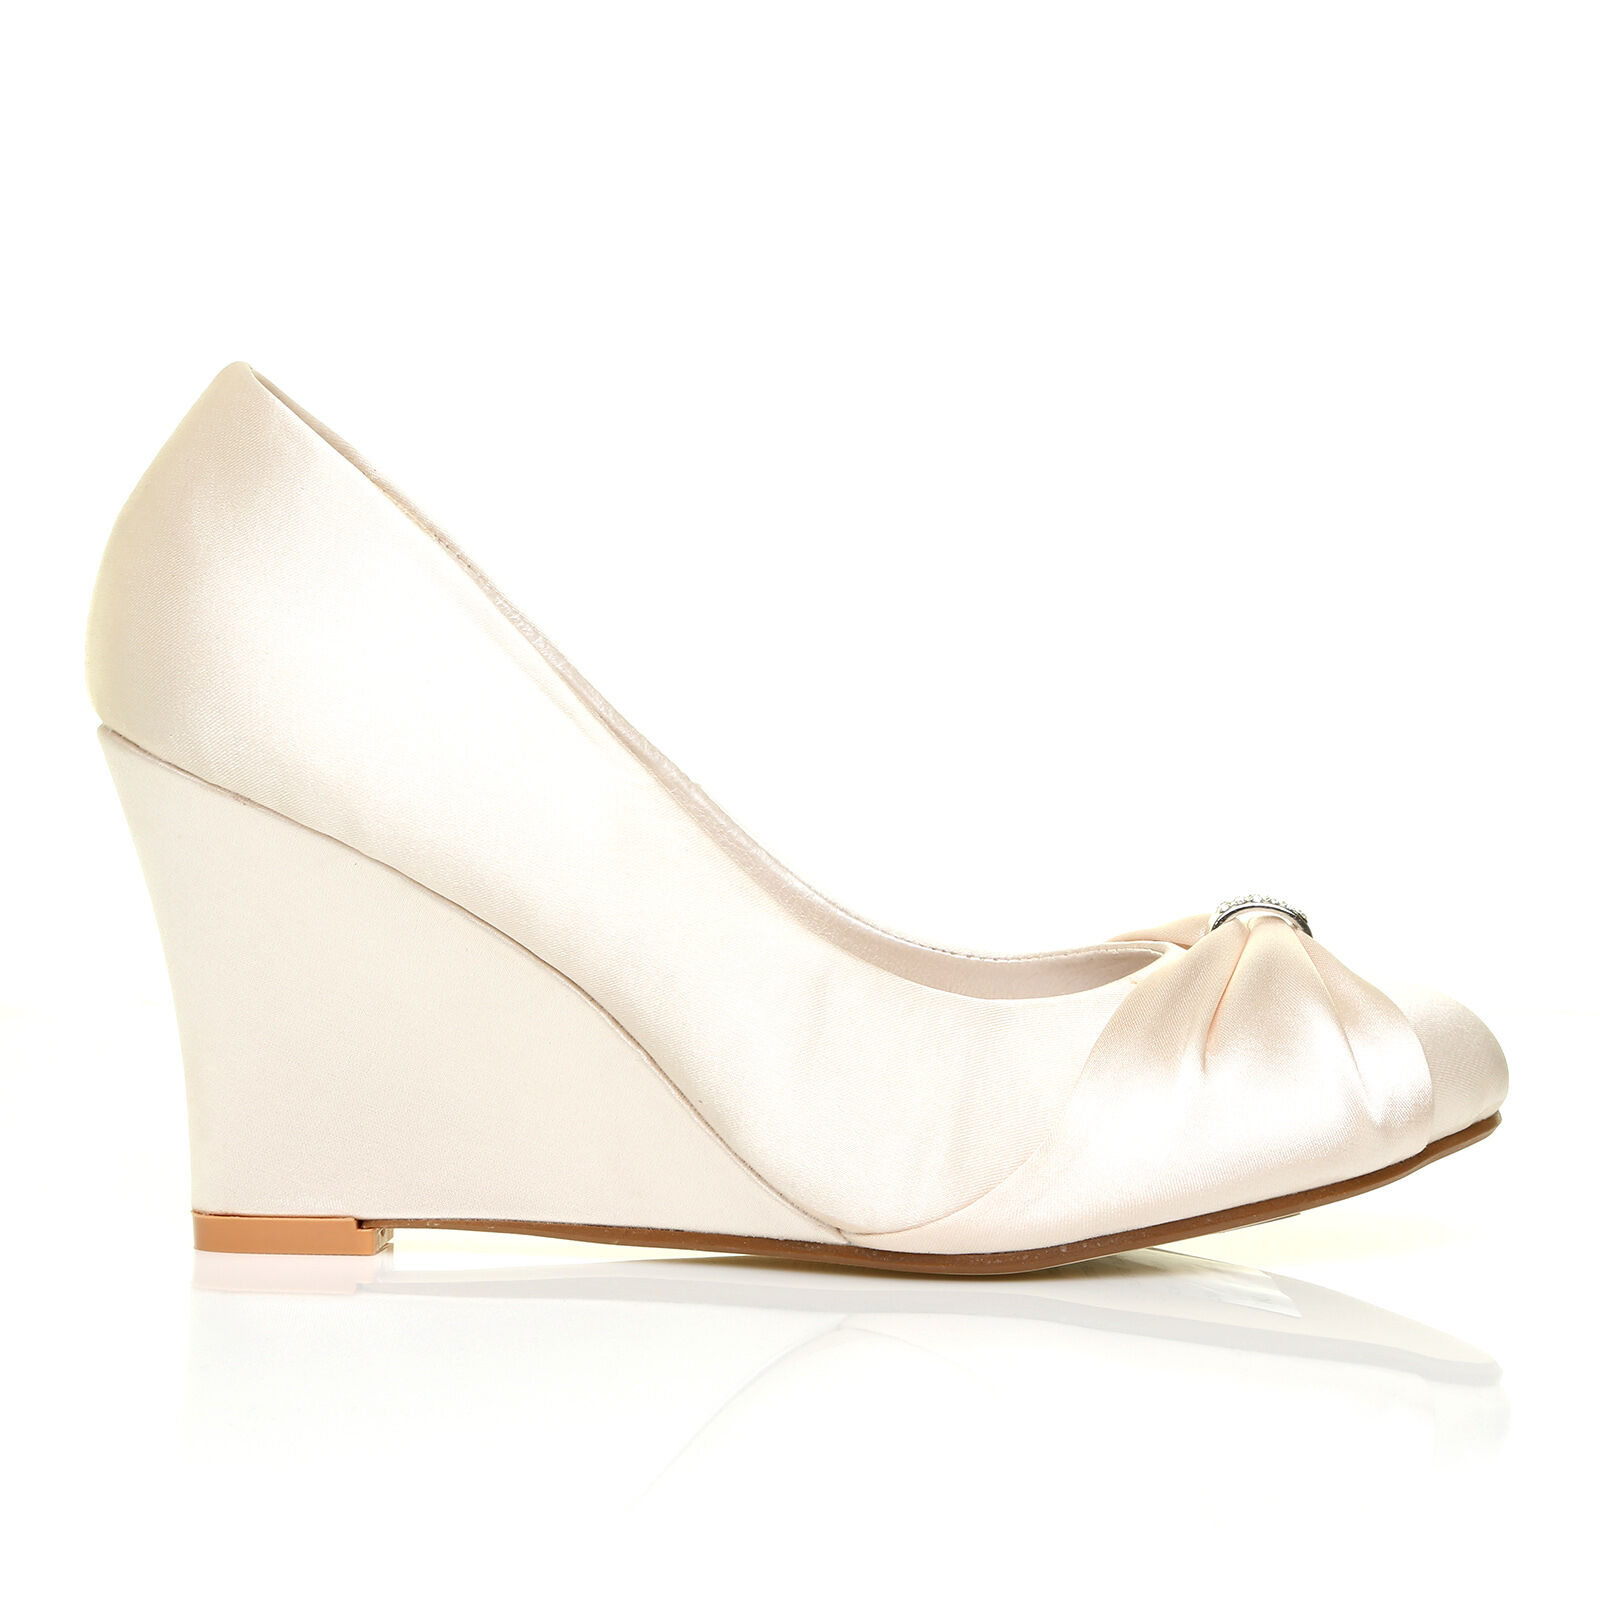 EDEN Ivory Satin Wedge High Heel Bridal Court Shoes